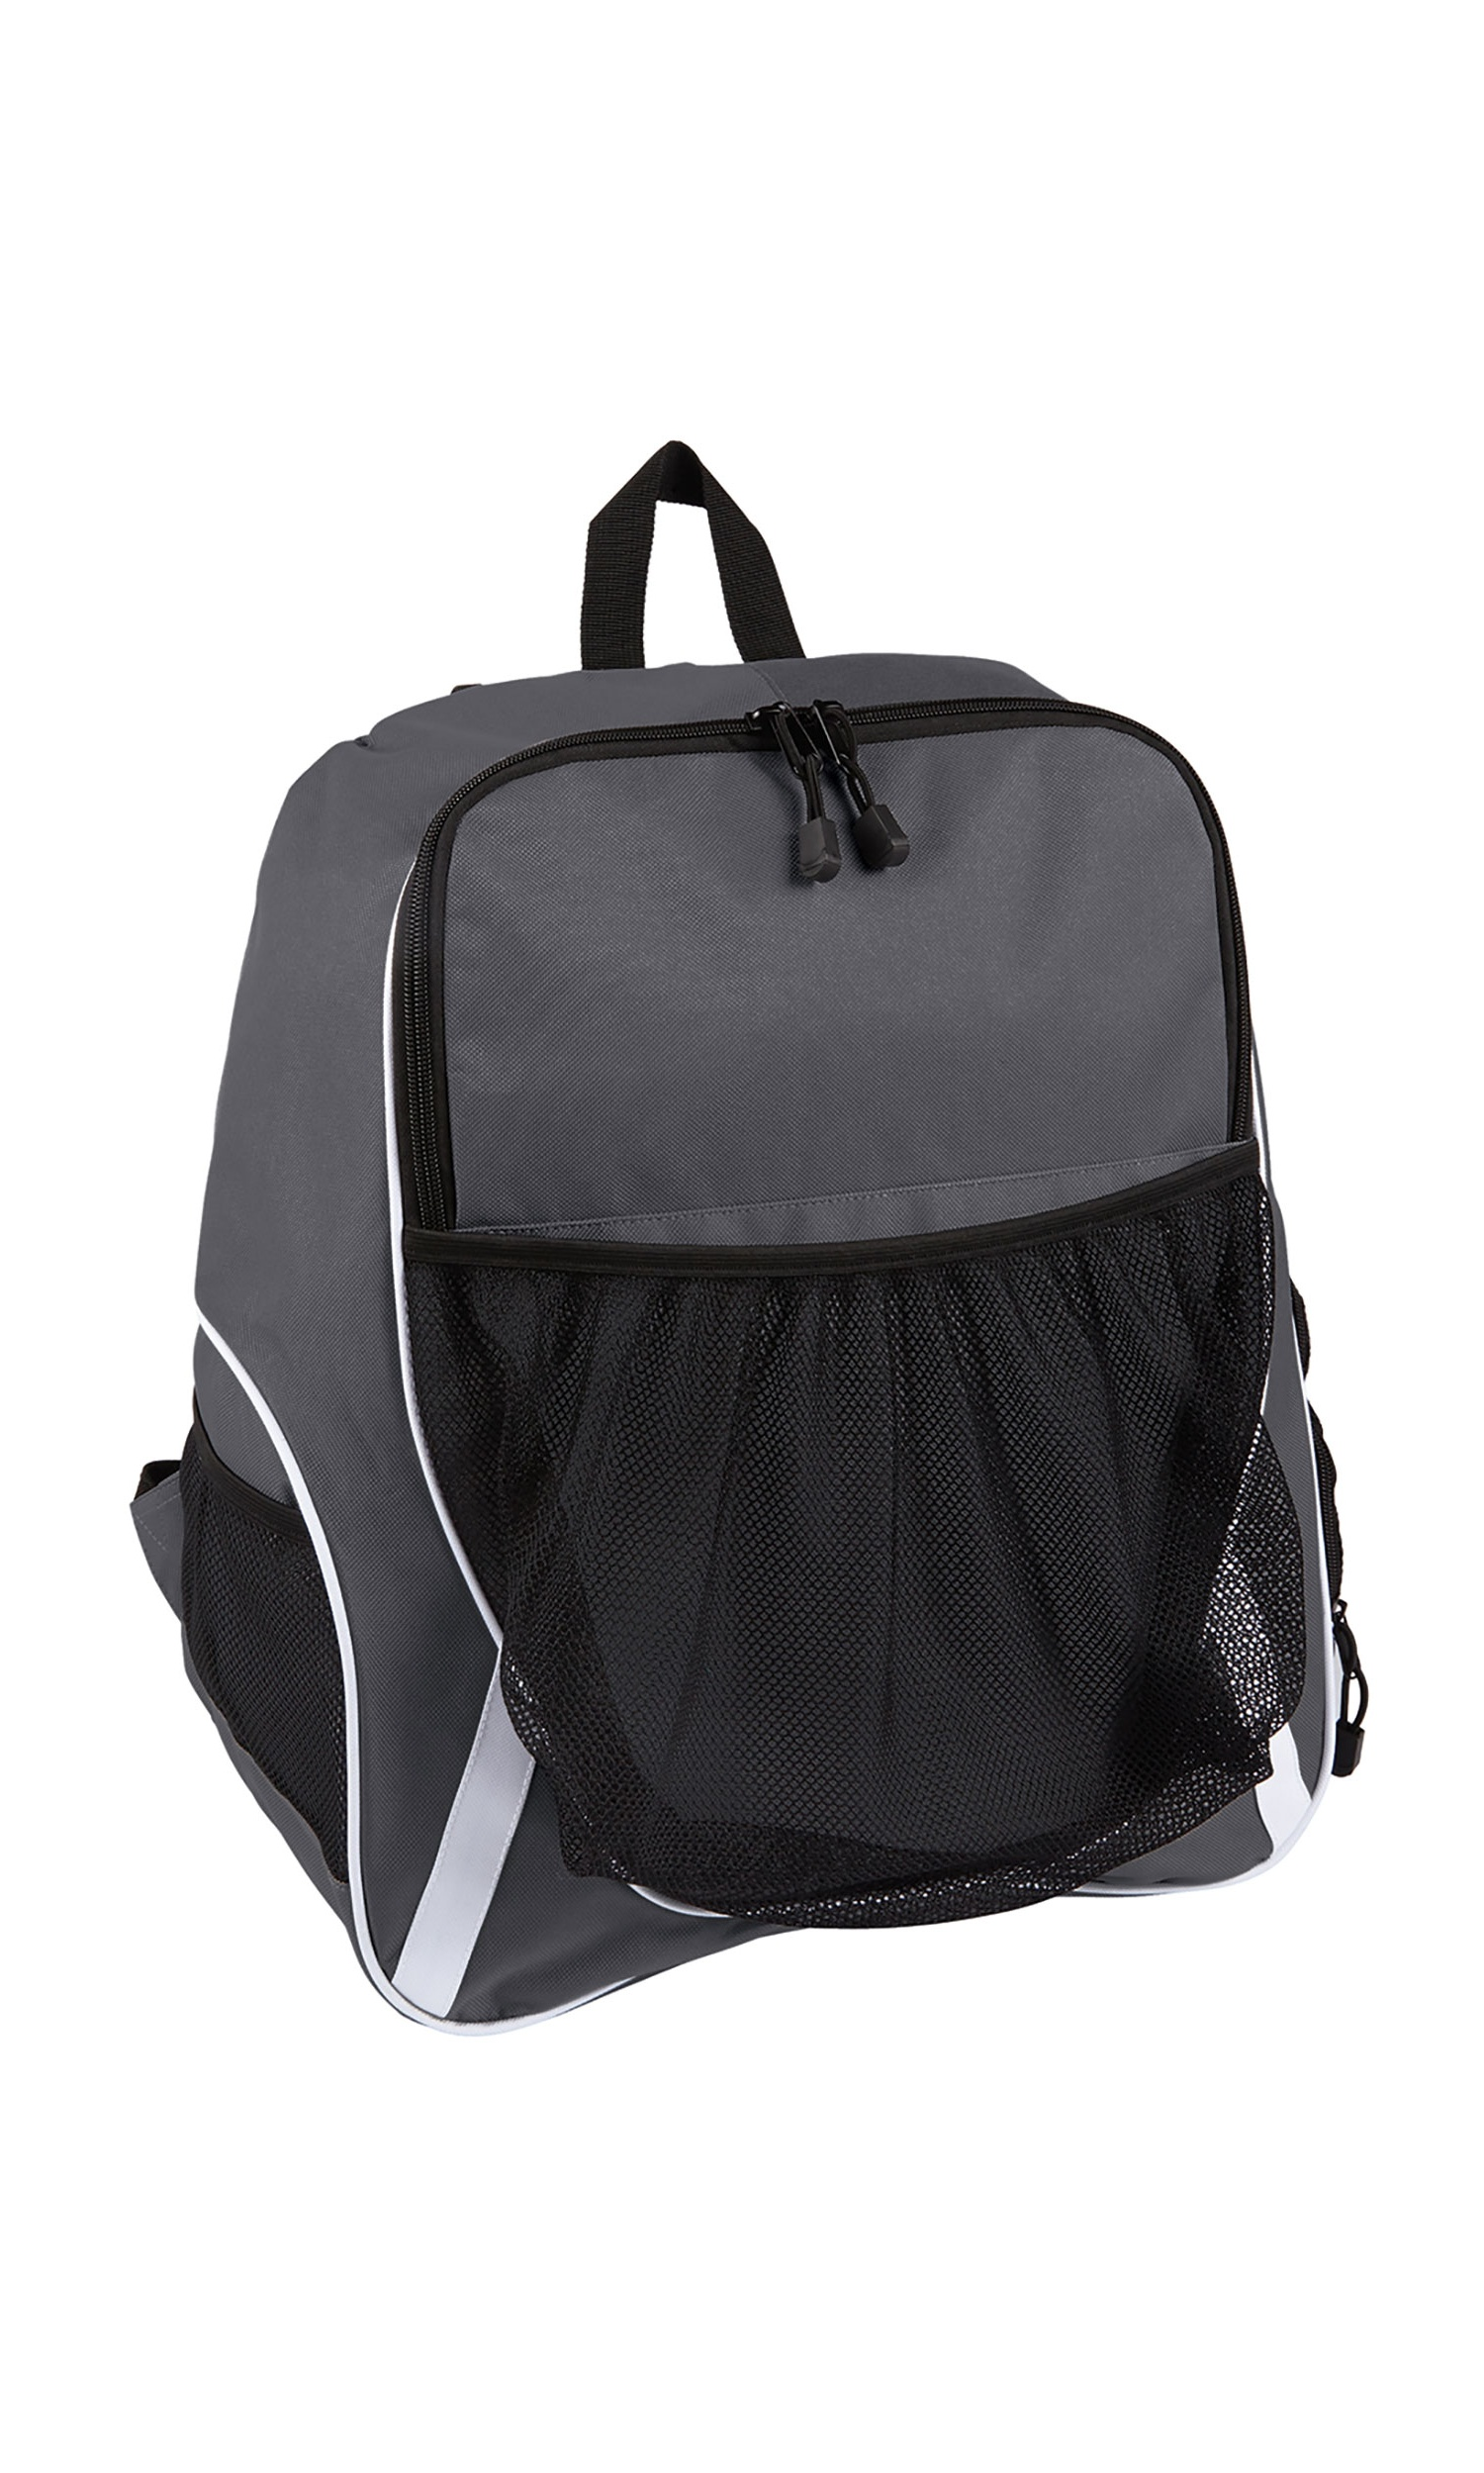 Team Equipment Backpack, Style TT104 by